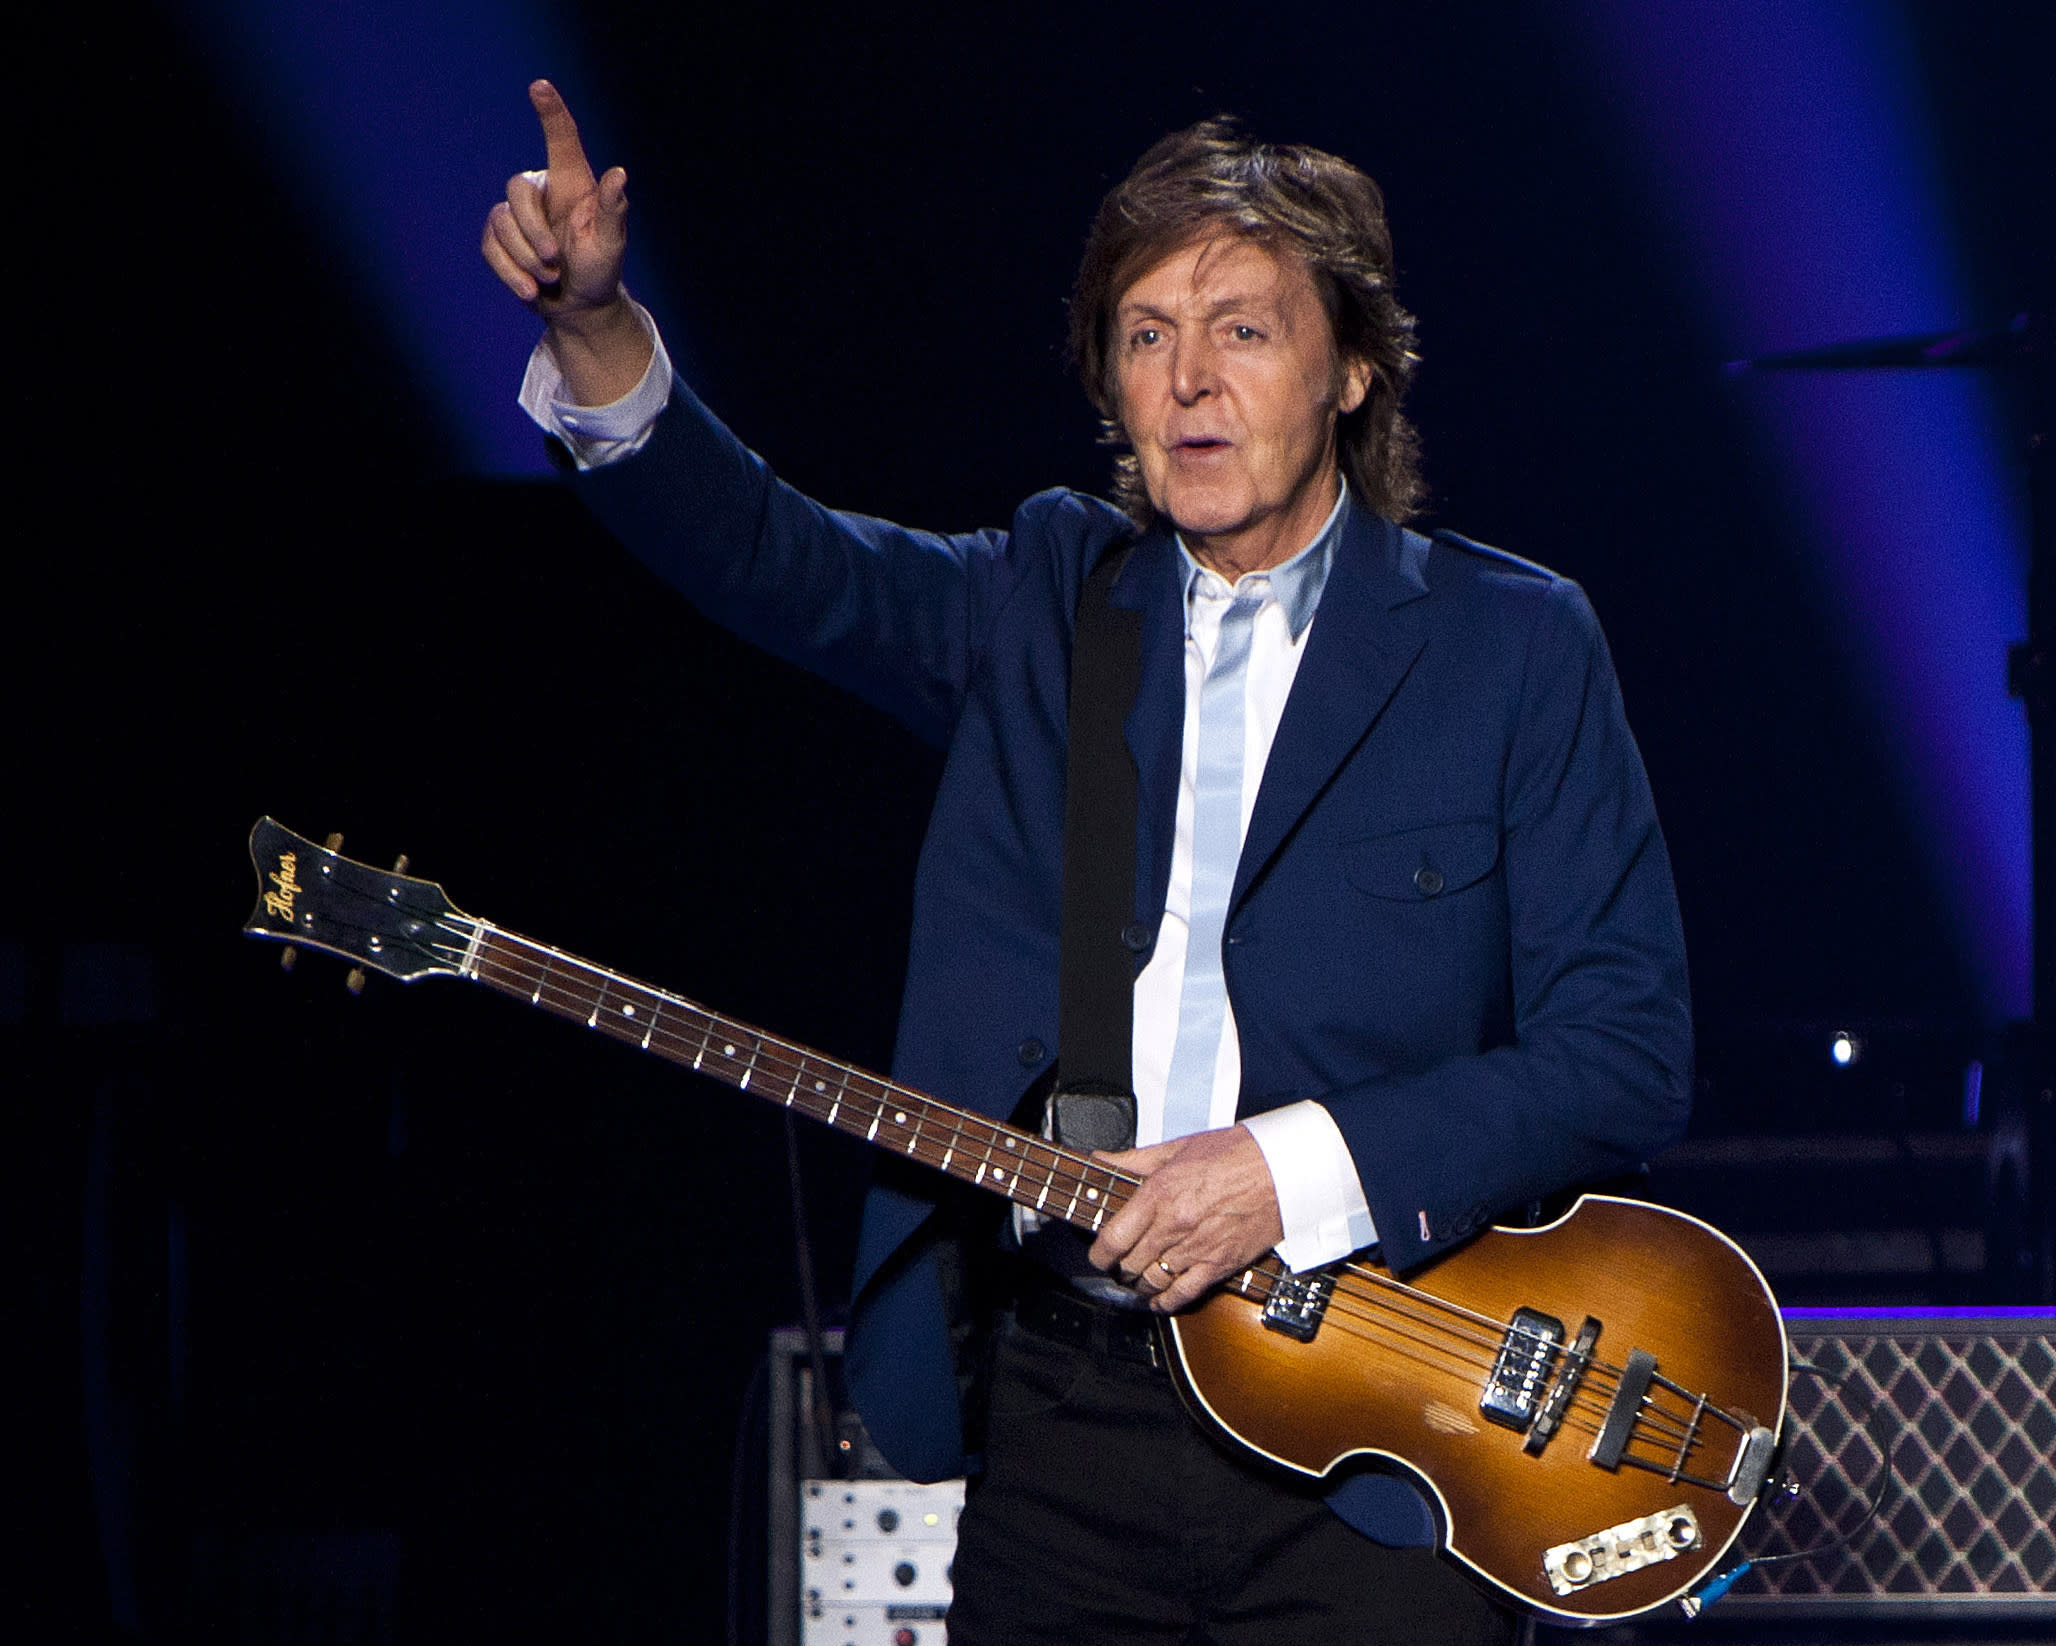 McCartney reflects on yesterday, today and tomorrow